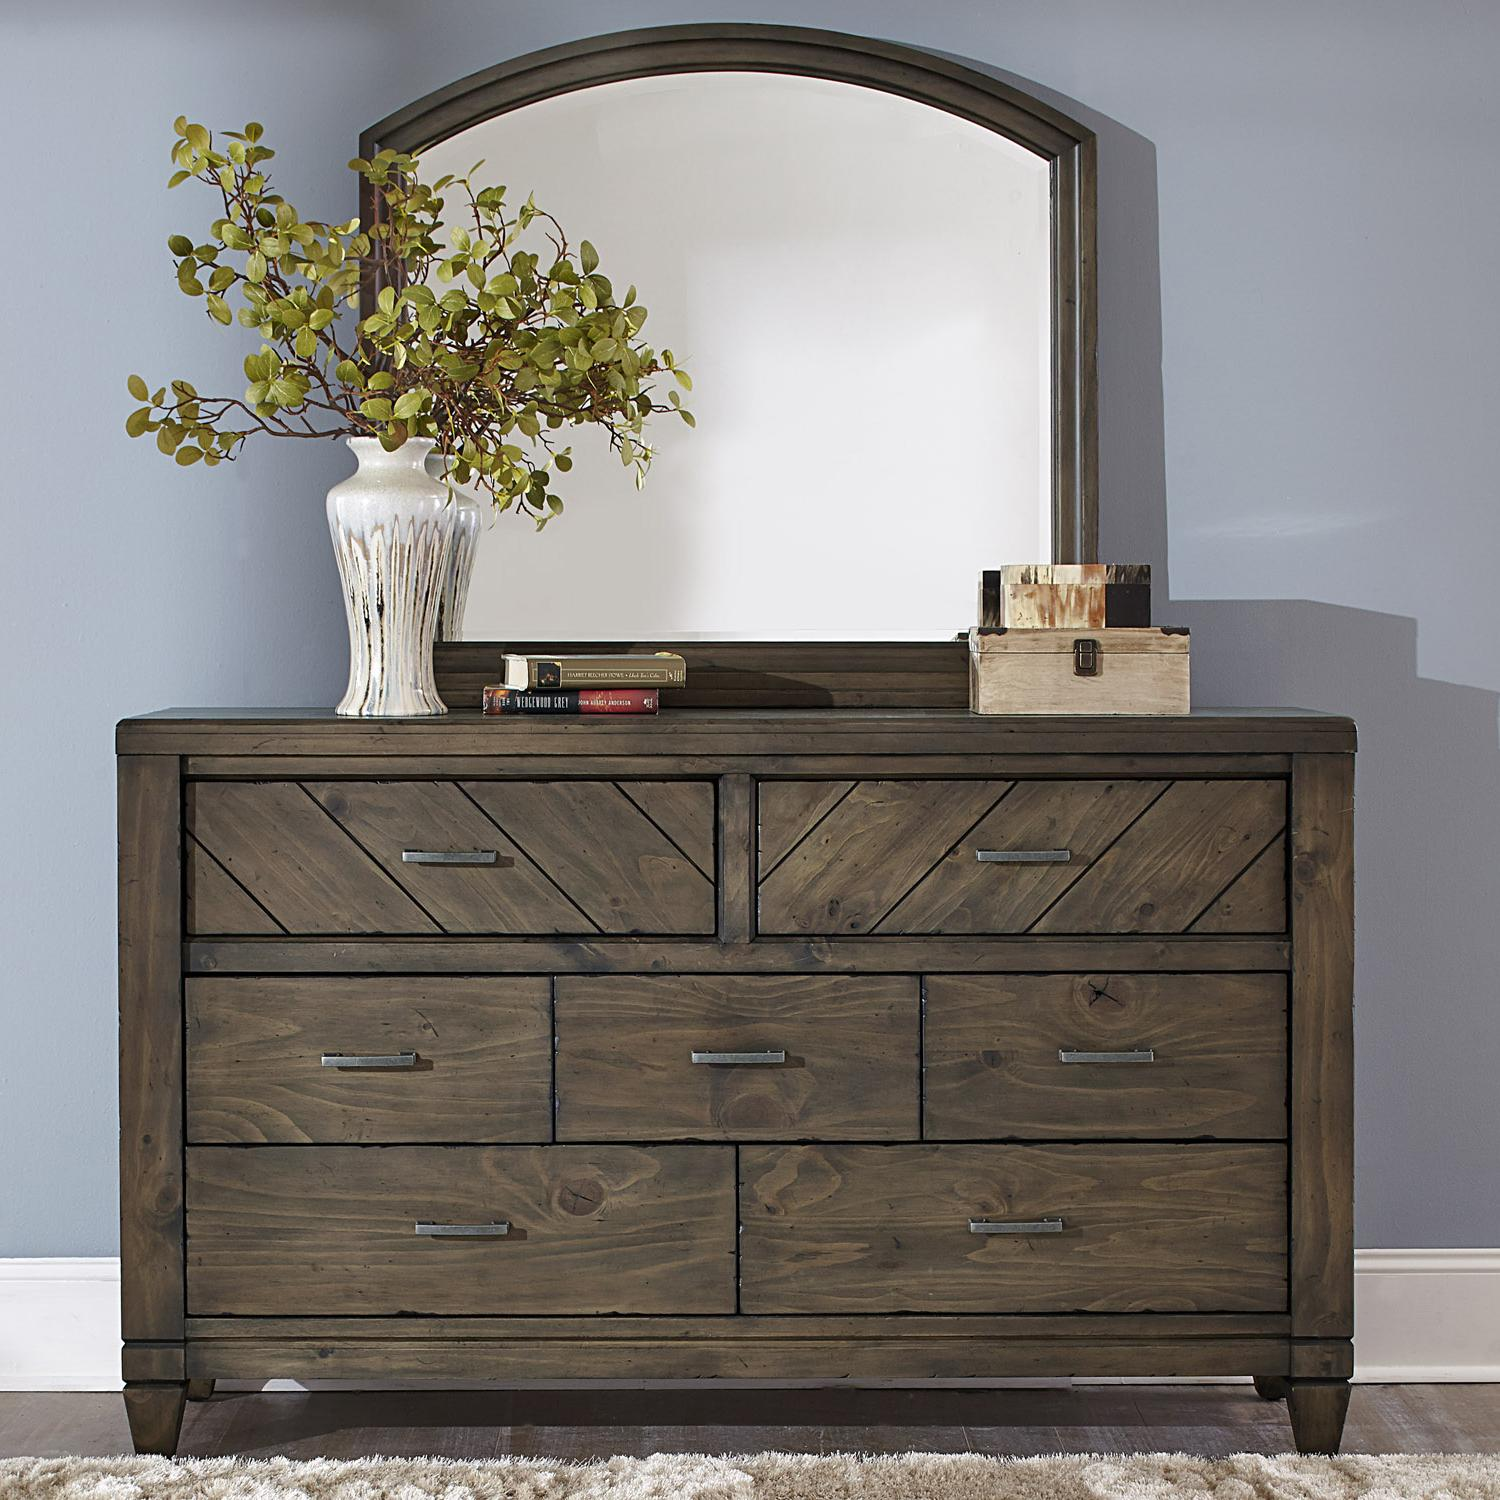 Liberty Furniture Modern Country Casual Rustic 7 Drawer Dresser Hudson 39 S Furniture Dresser